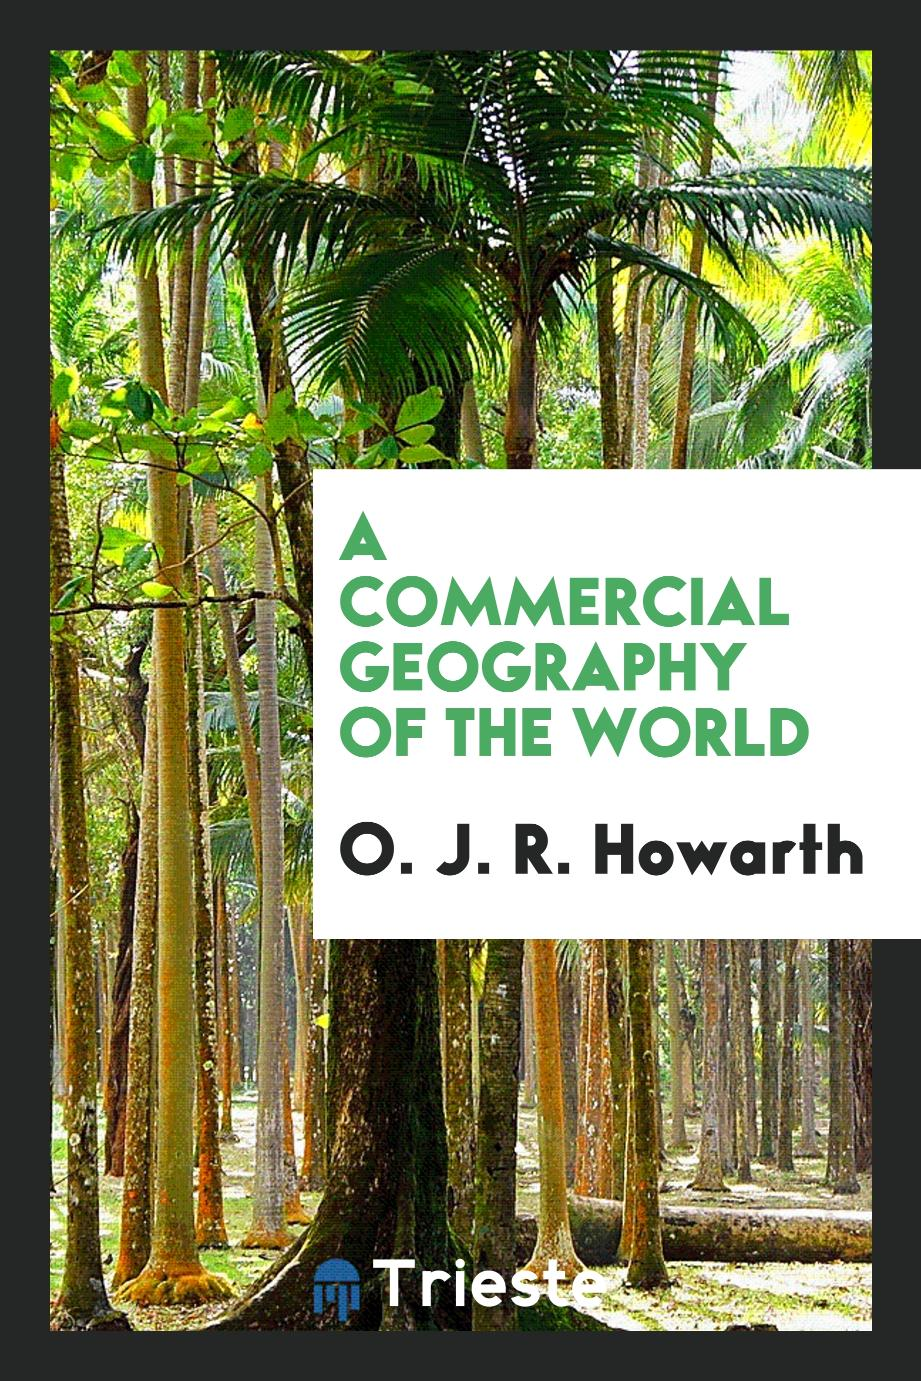 A commercial geography of the world